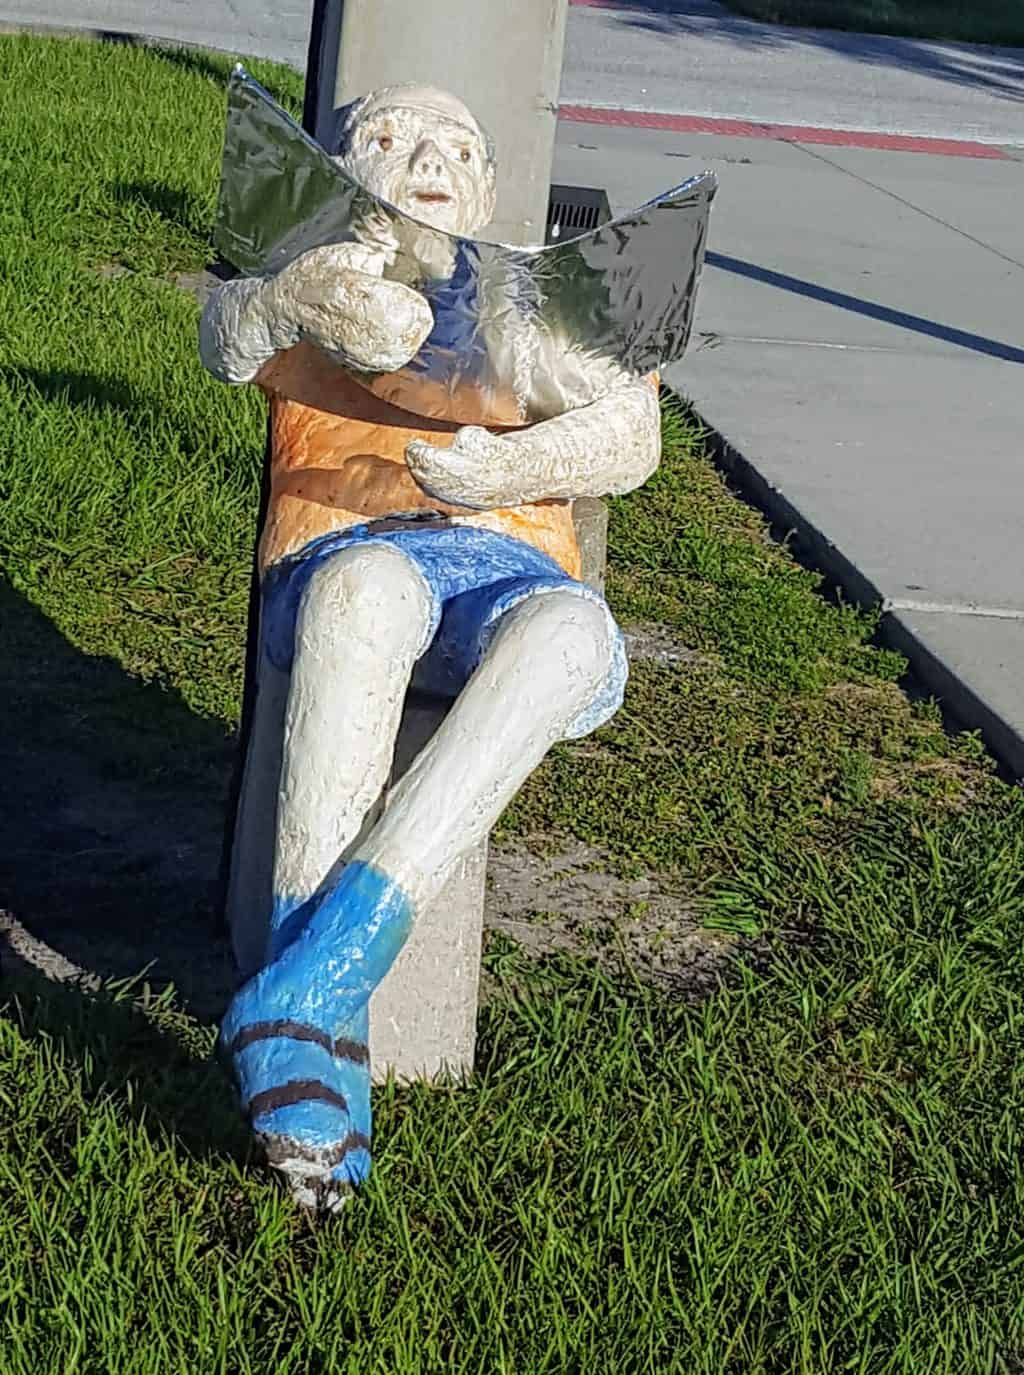 Catching rays, paper mache figure sculpture